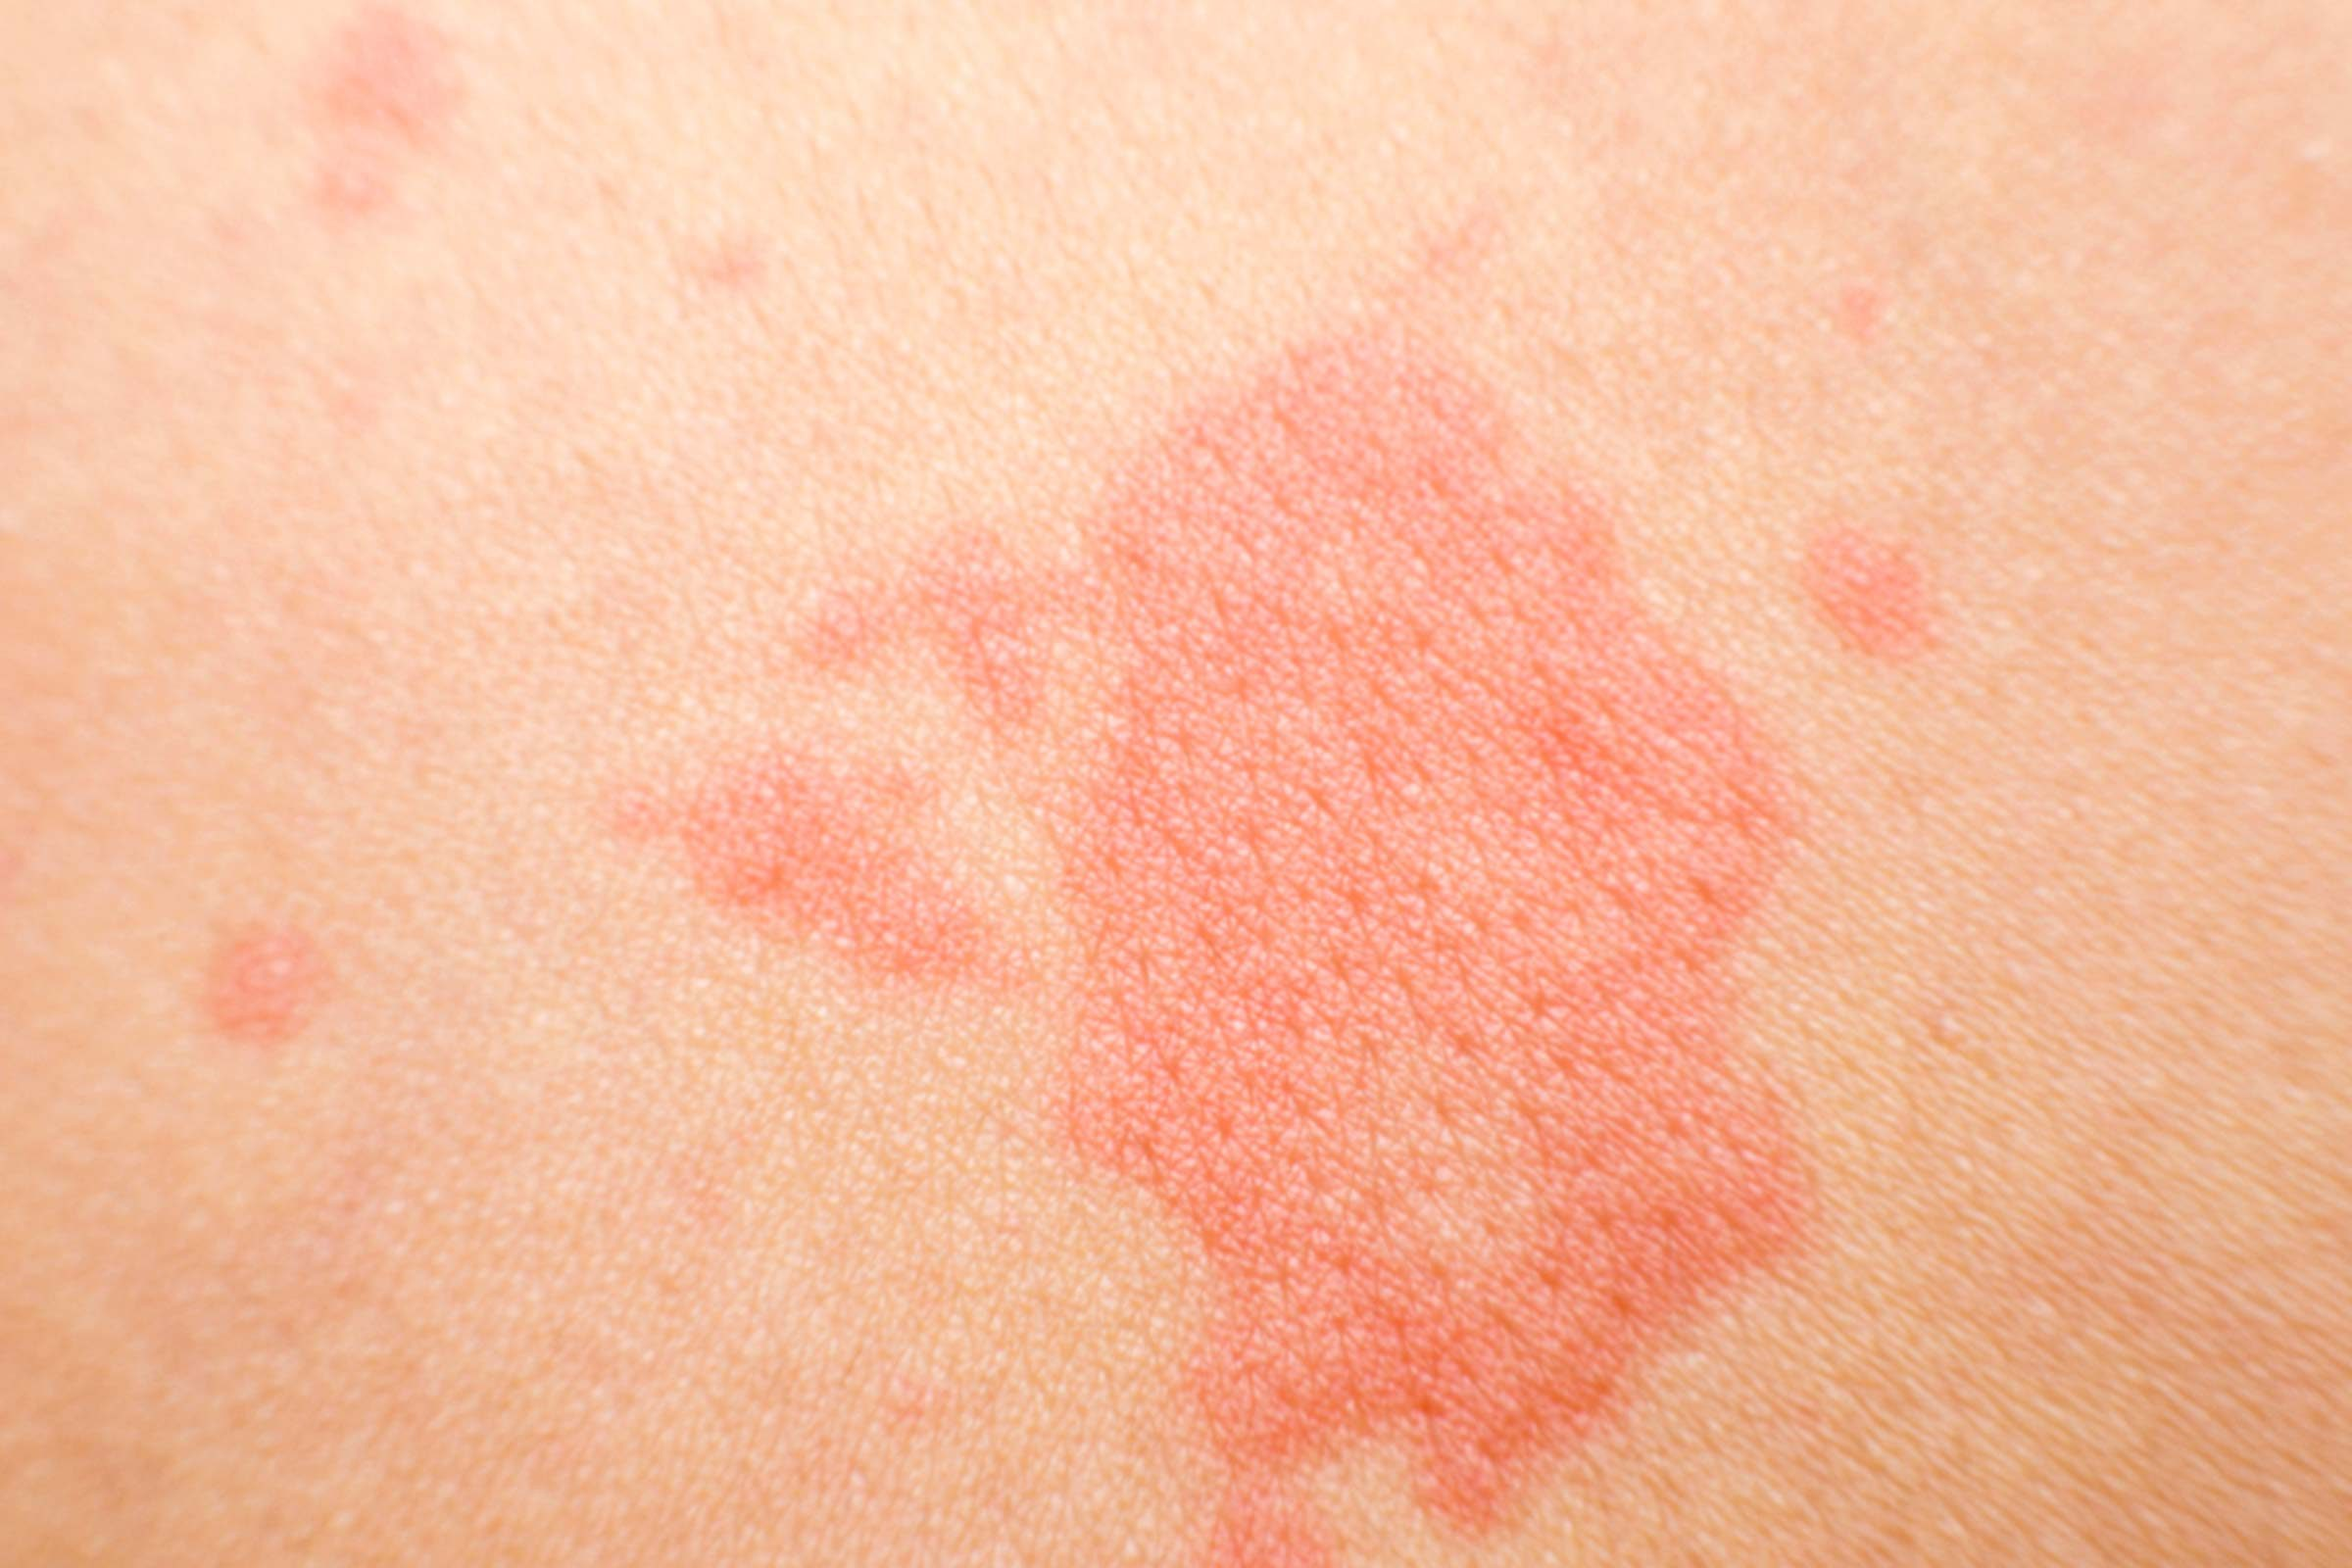 red patch on skin